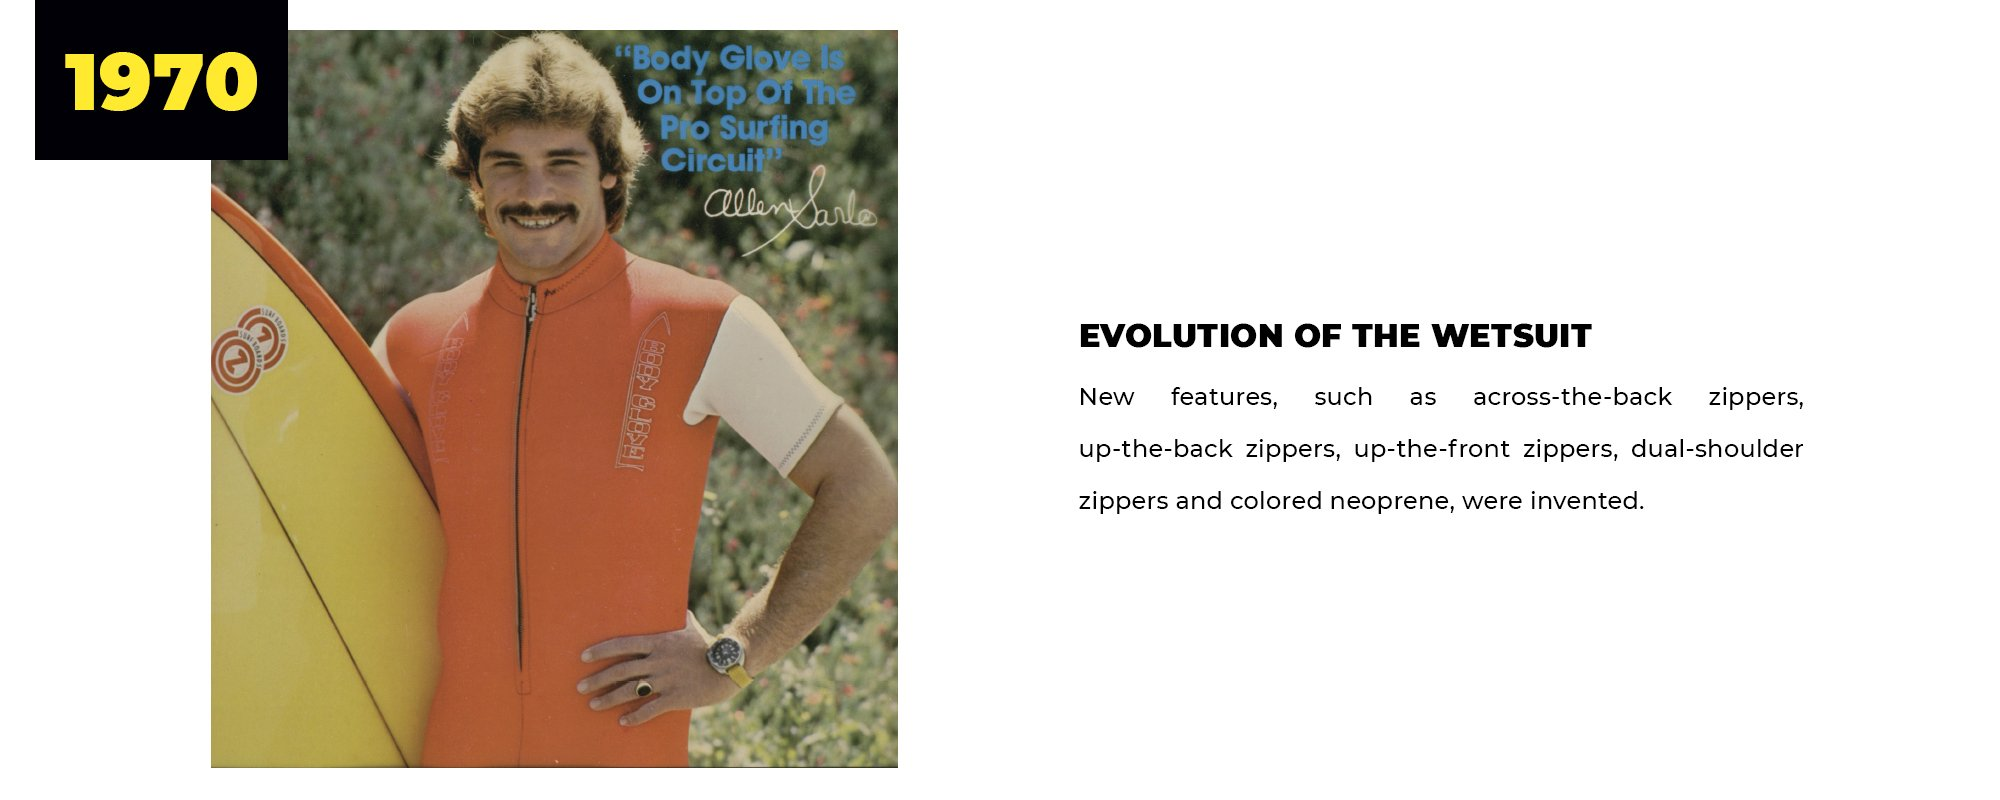 1970 | Evolution of the Wetsuit | New features, such as across-the-back zippers, up-the-back zippers, up-the-front zippers, dual-shoulder zippers and colored neoprene, were invented.